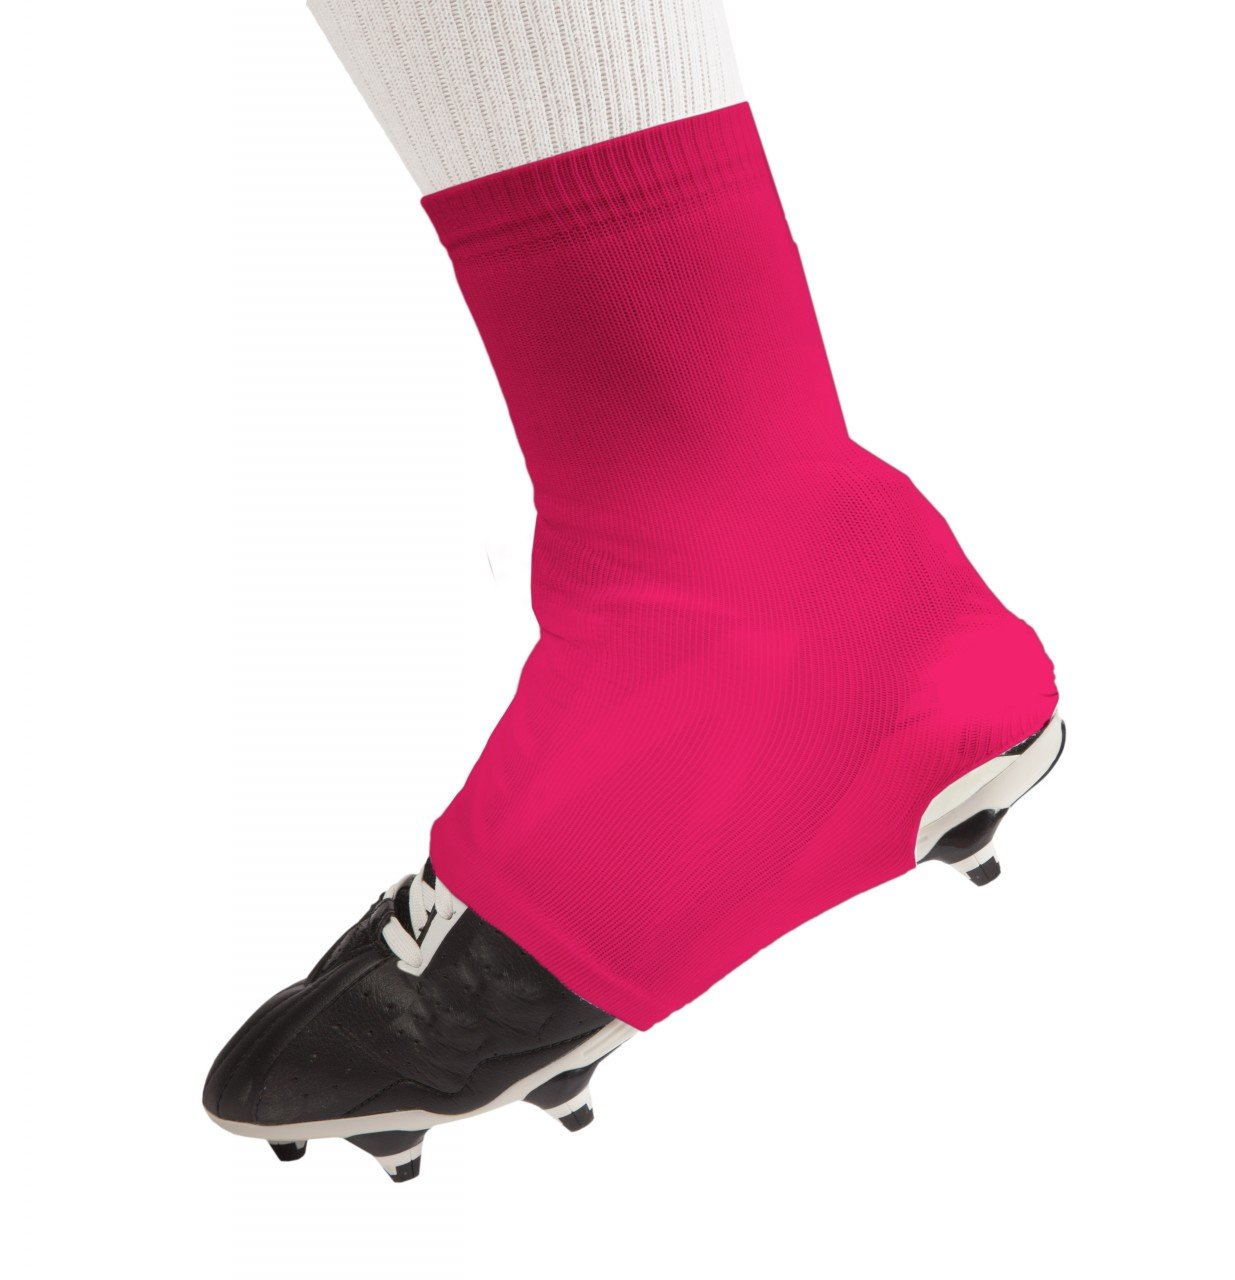 The Original Razur Spats Cleat Covers with Patented Debris Inhibitor (TDI) Technology | Perfect for Football Lacrosse Soccer and More! by Southern Sport